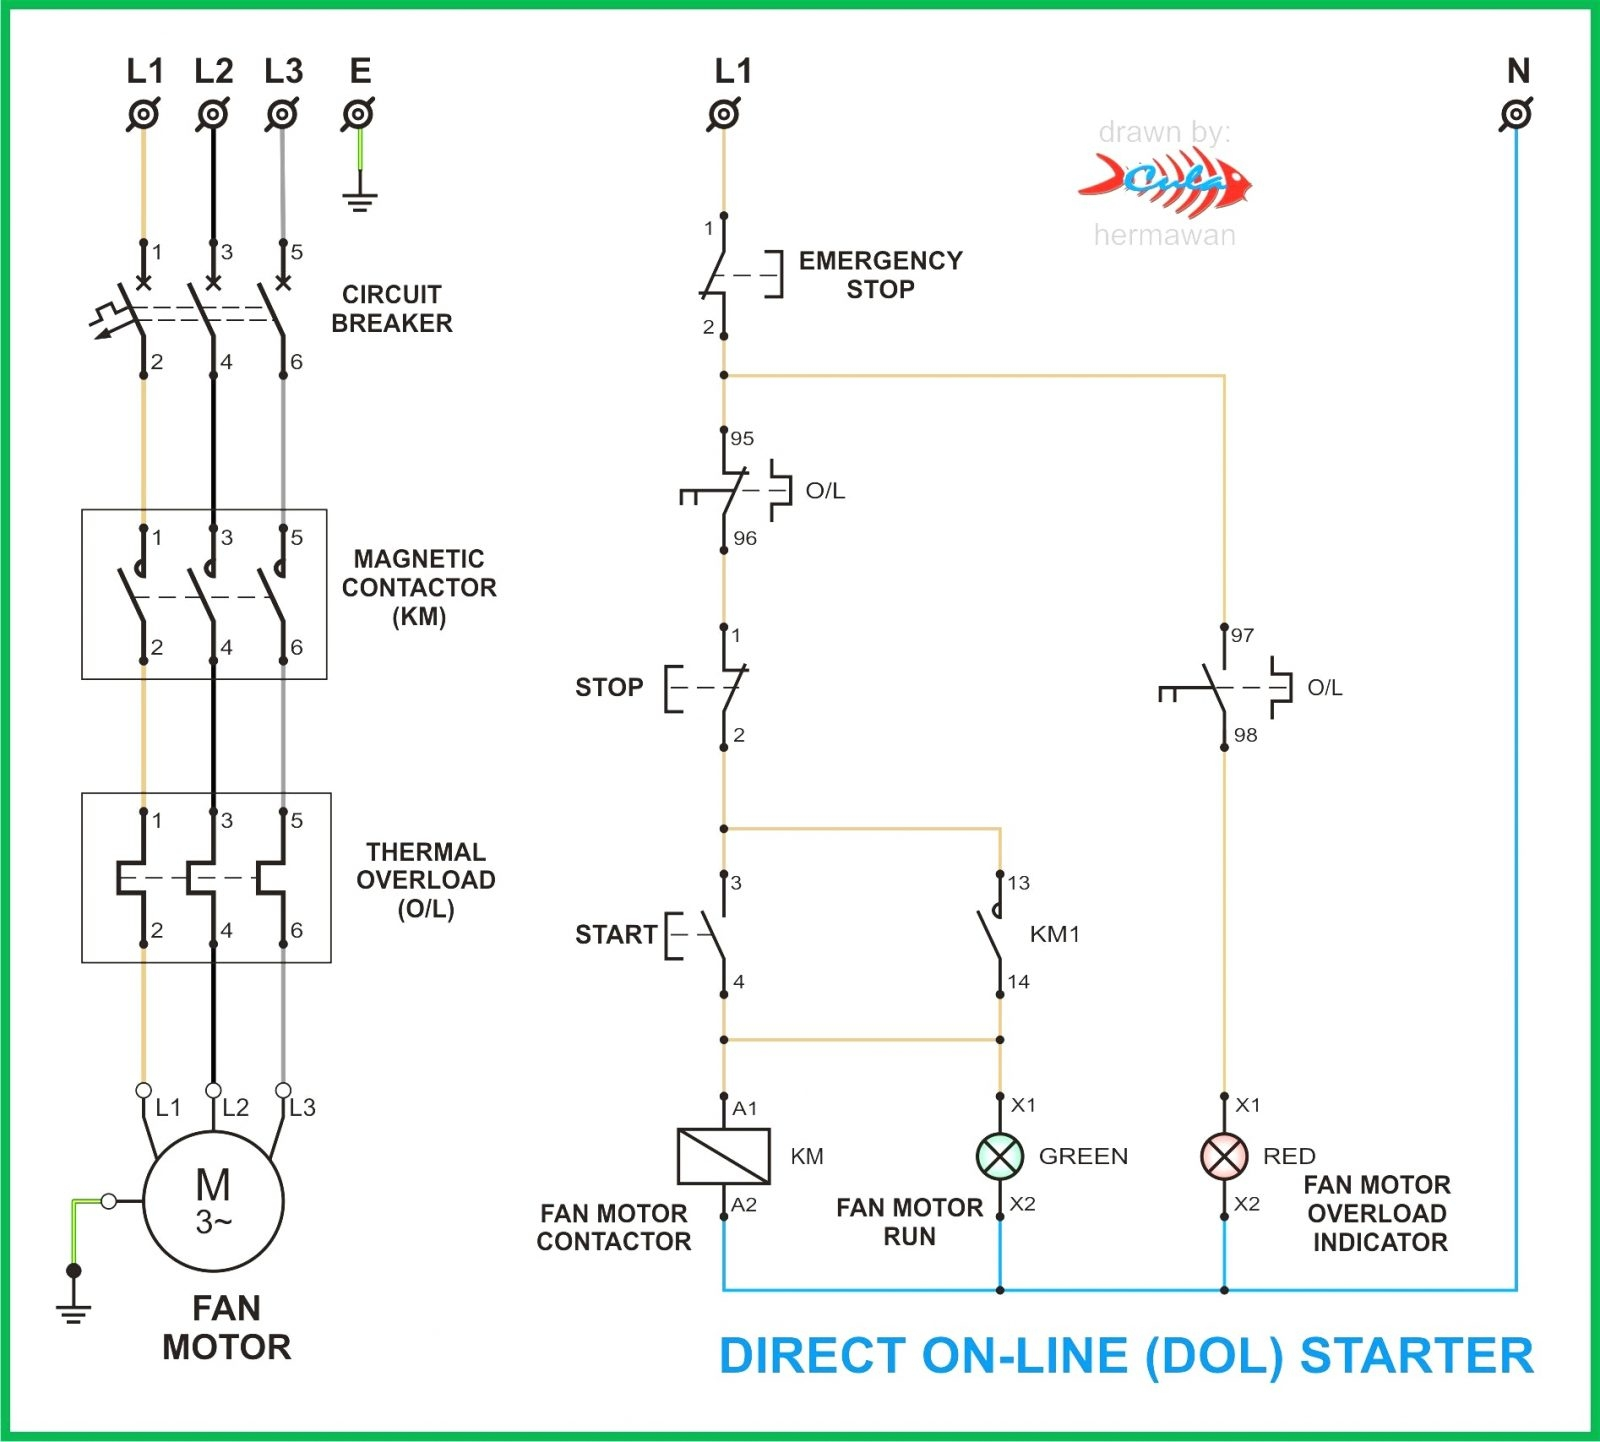 asco 918 wiring diagram Download-Old Fashioned Square D Lighting Contactor Series 1804 Wiring Diagram Part 10 Wiring Diagram Electrical 20-r